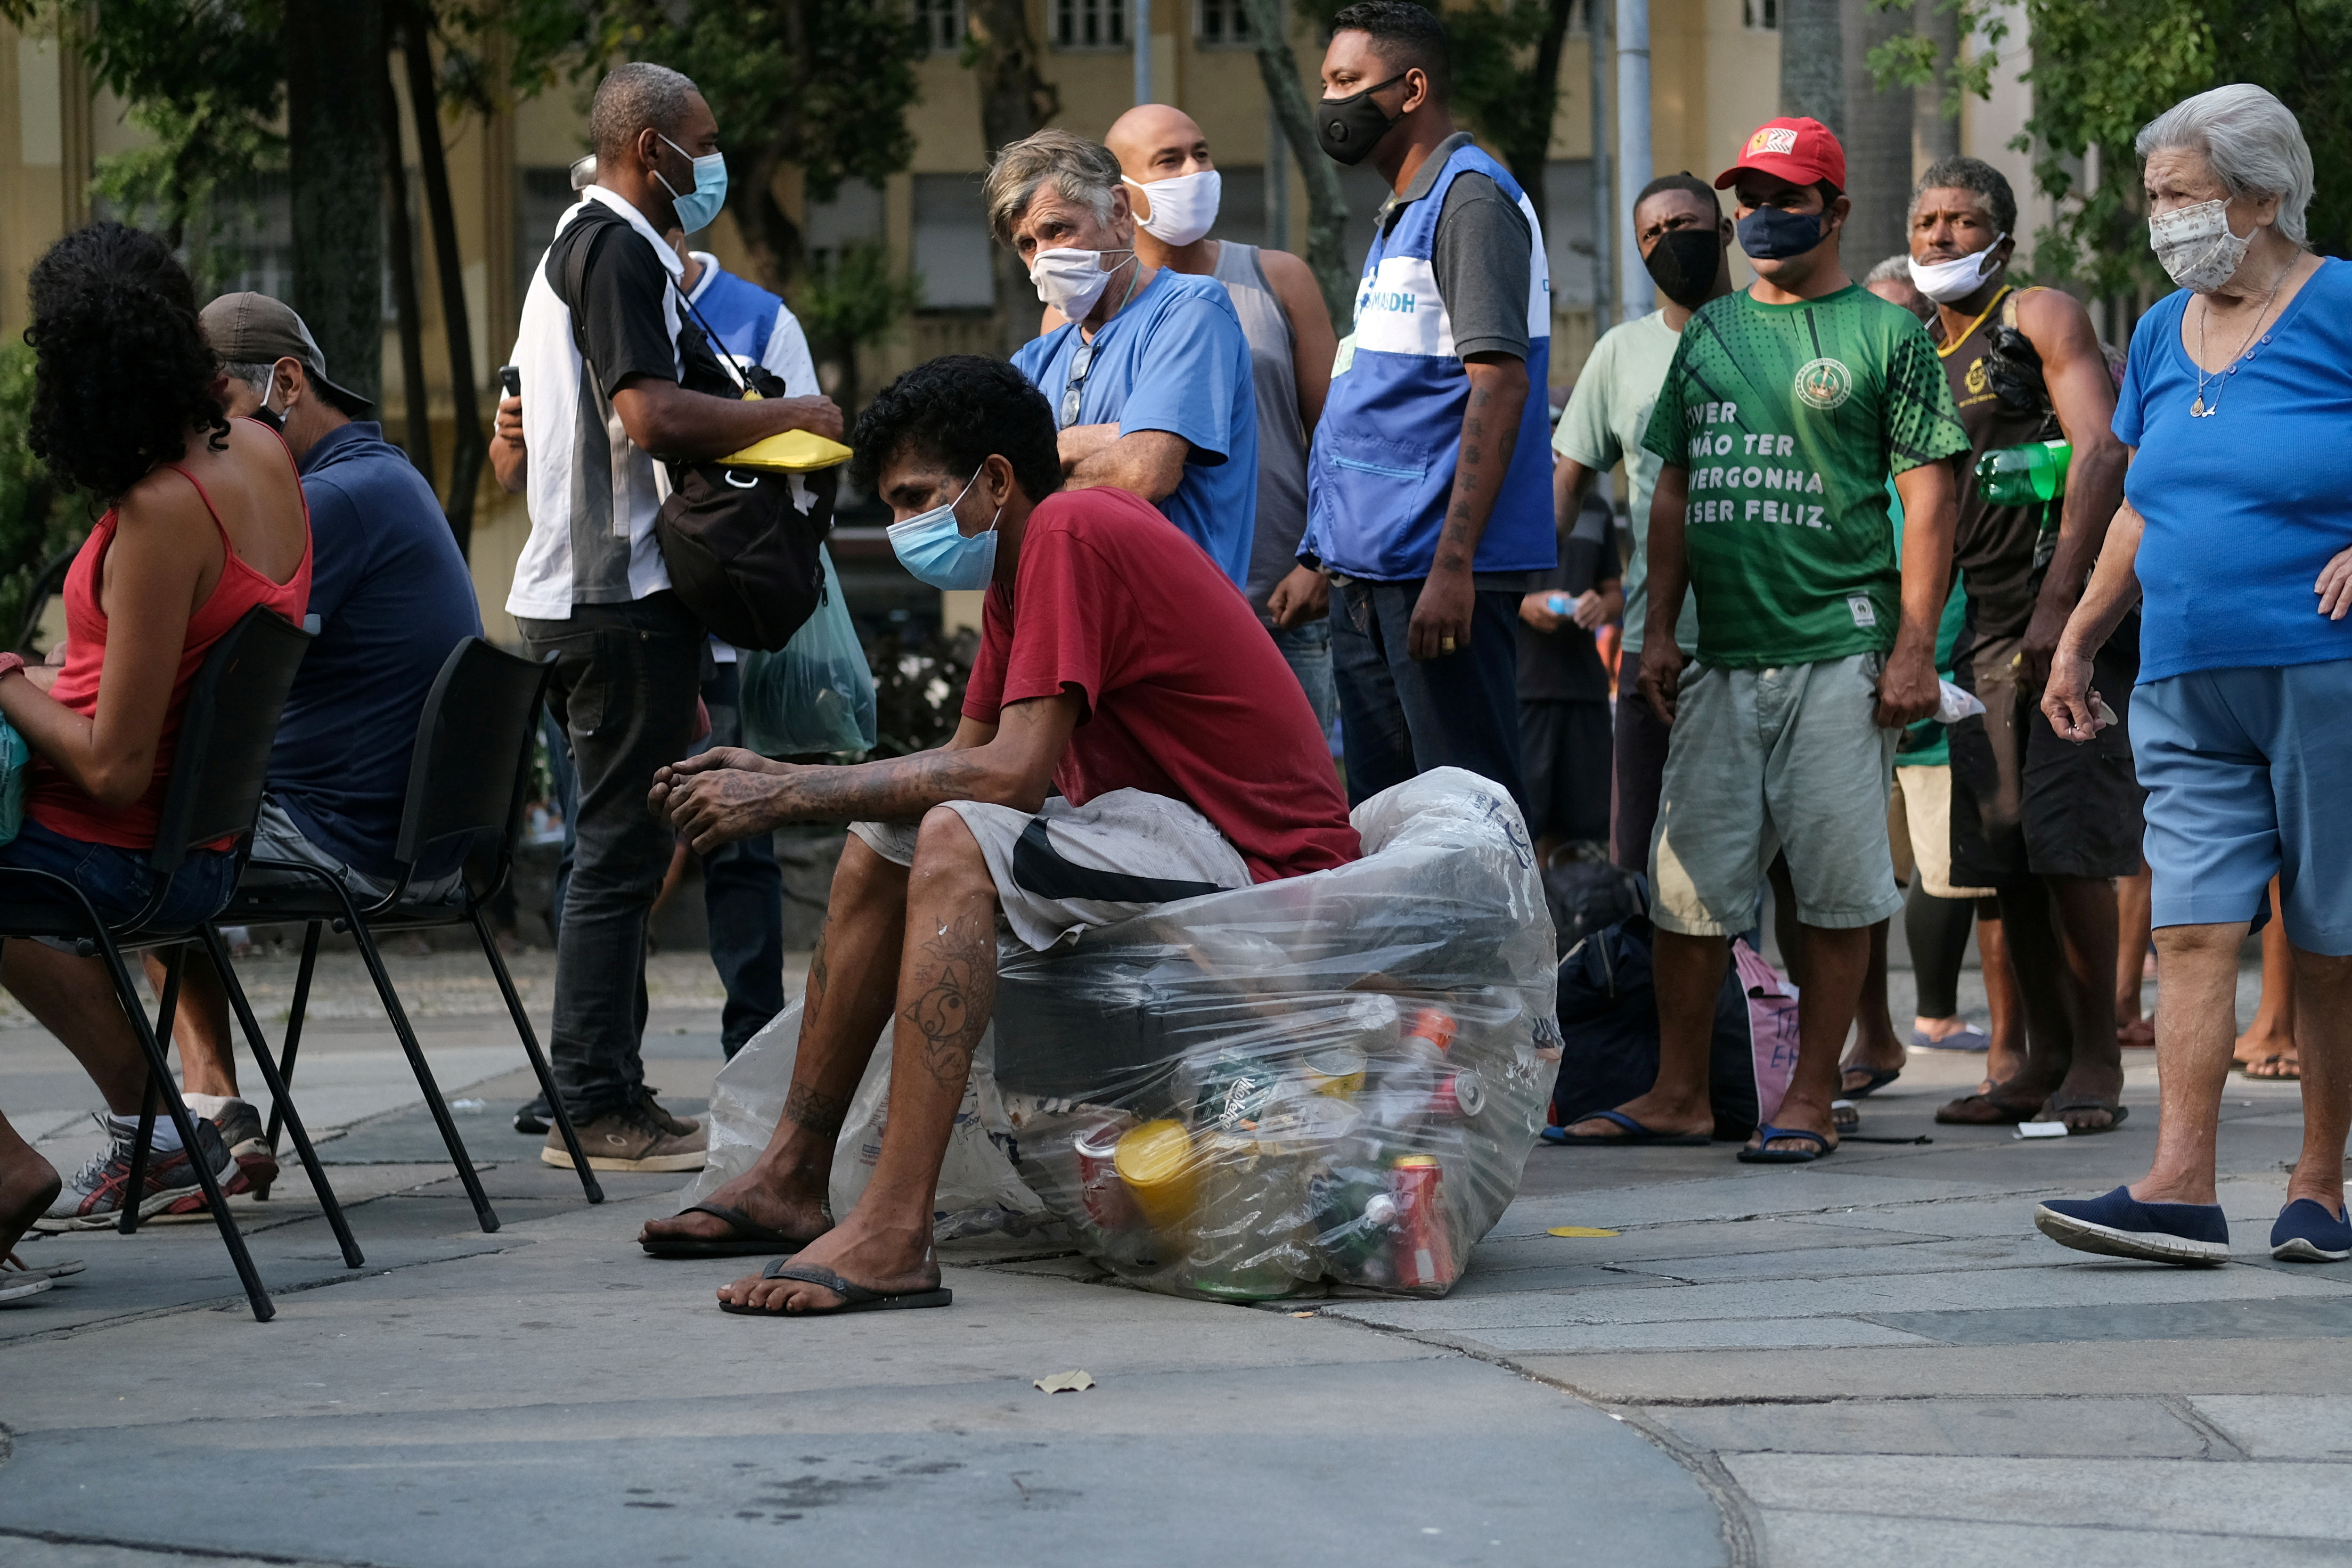 People wait to receive an AstraZeneca coronavirus disease (COVID-19) vaccine during a vaccination campaign for homeless people, in Rio de Janeiro's downtown, Brazil, May 27, 2021. REUTERS/Ricardo Moraes